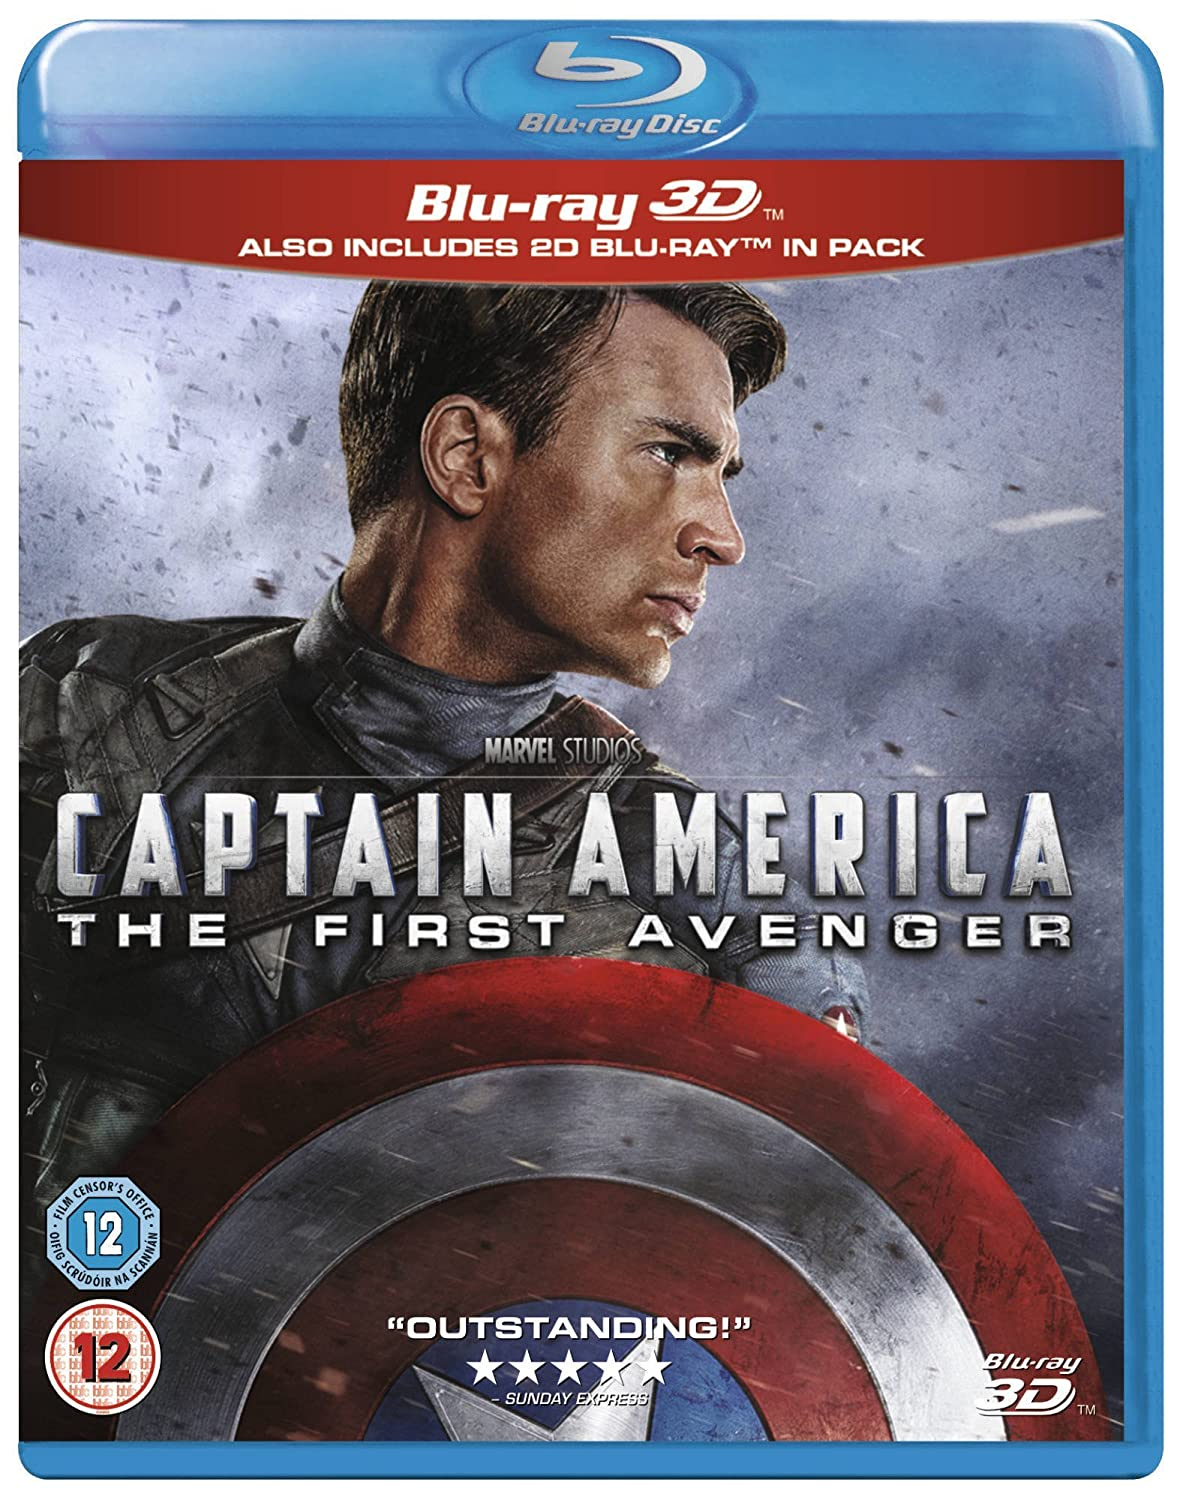 Captain America: First Avenger 3D BD Reino Unido Blu-ray: Amazon.es: Captain America: Cine y Series TV